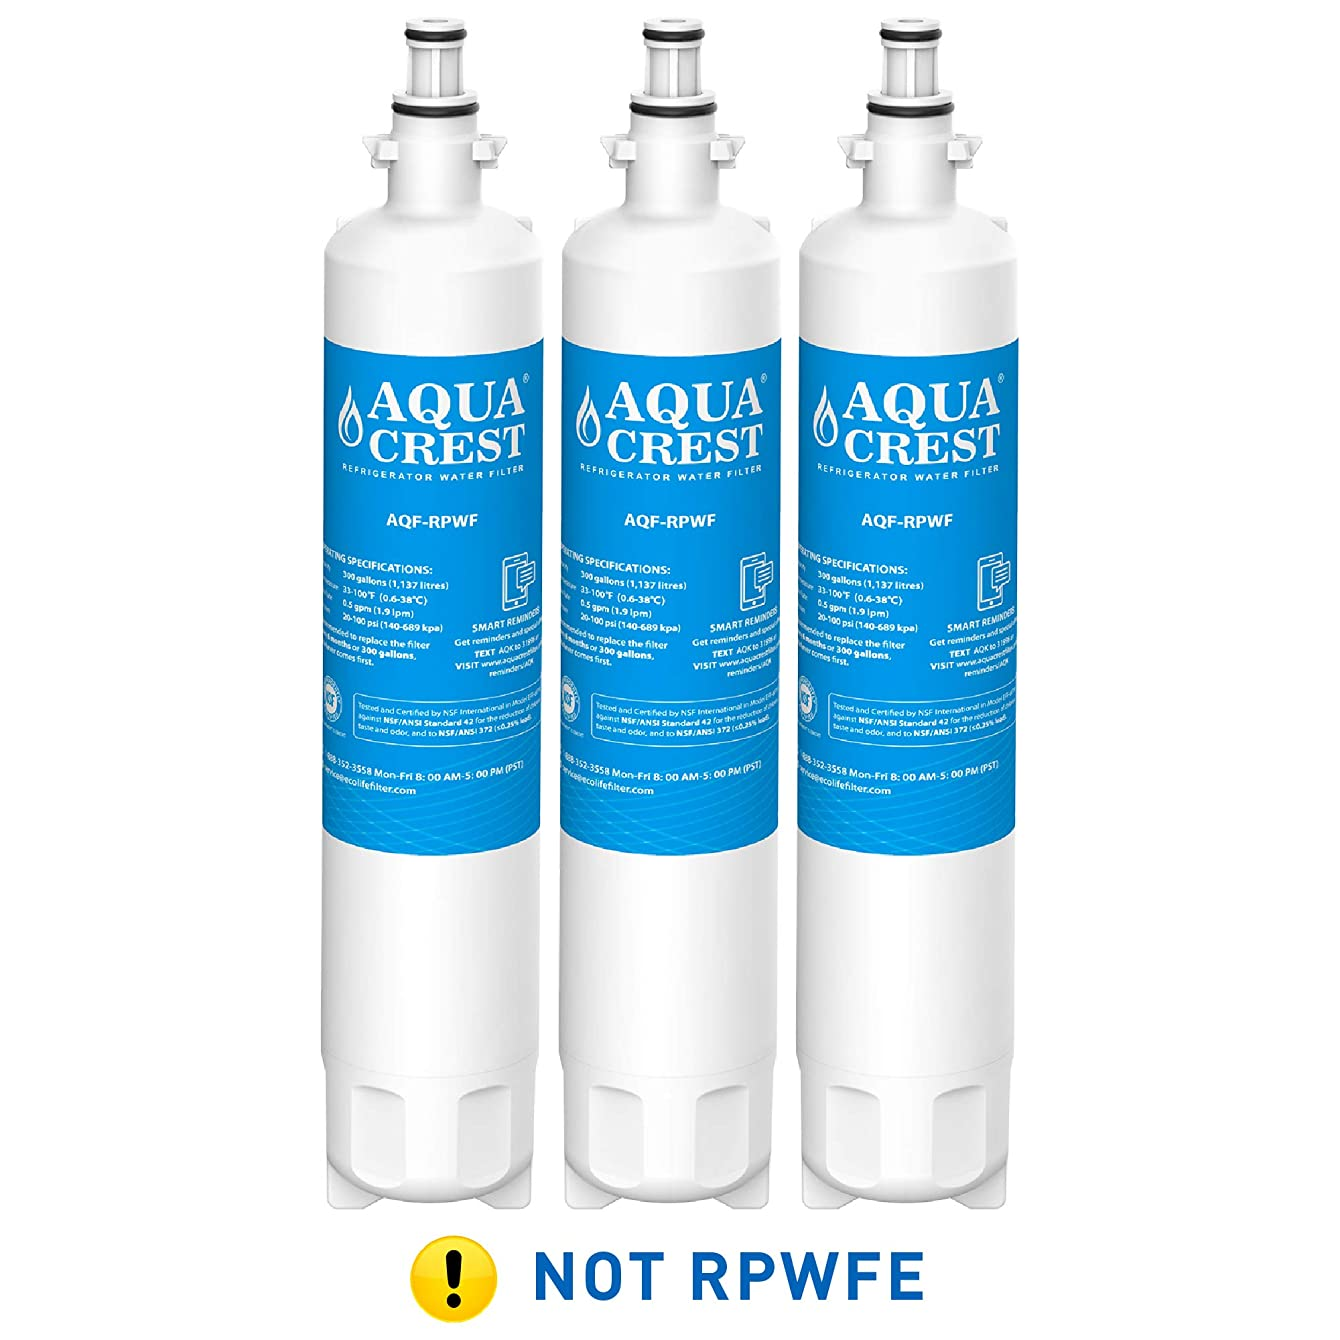 AQUACREST Replacement RPWF Refrigerator Water Filter, Compatible with GE RPWF (Pack of 3) (NOT RPWFE)